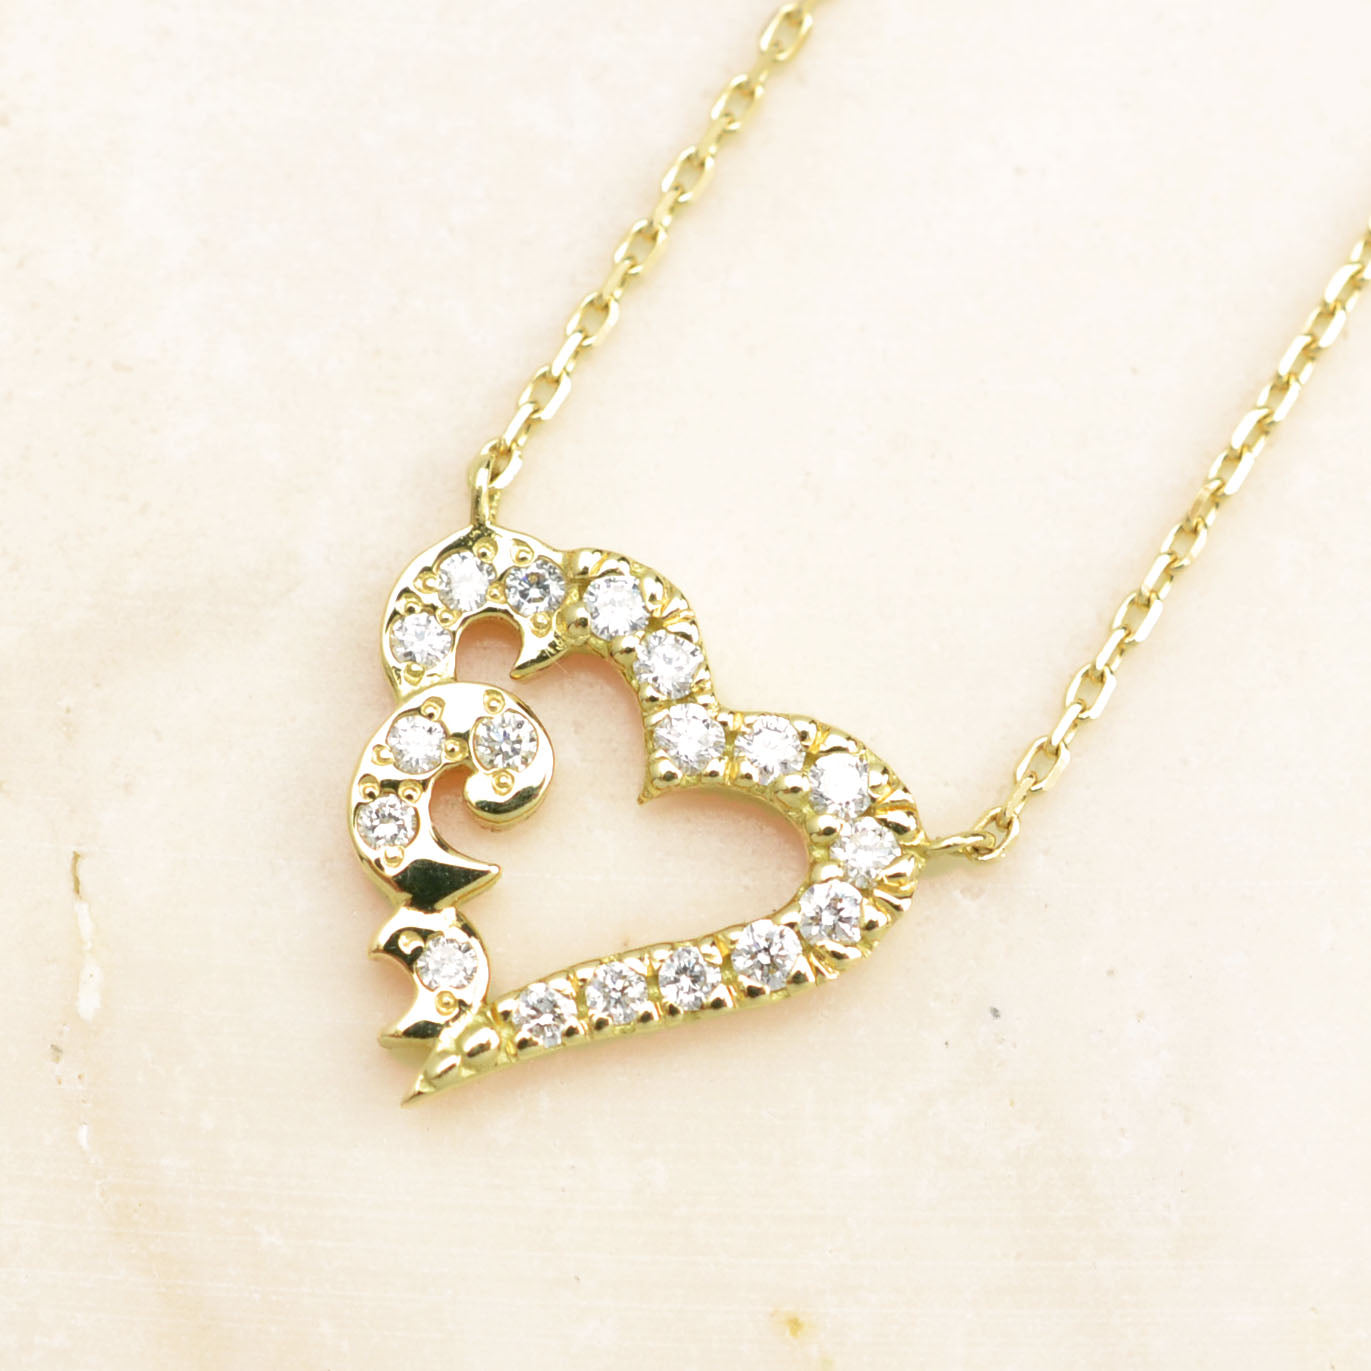 18K Yellow Gold Eternal Heart Diamond Necklace